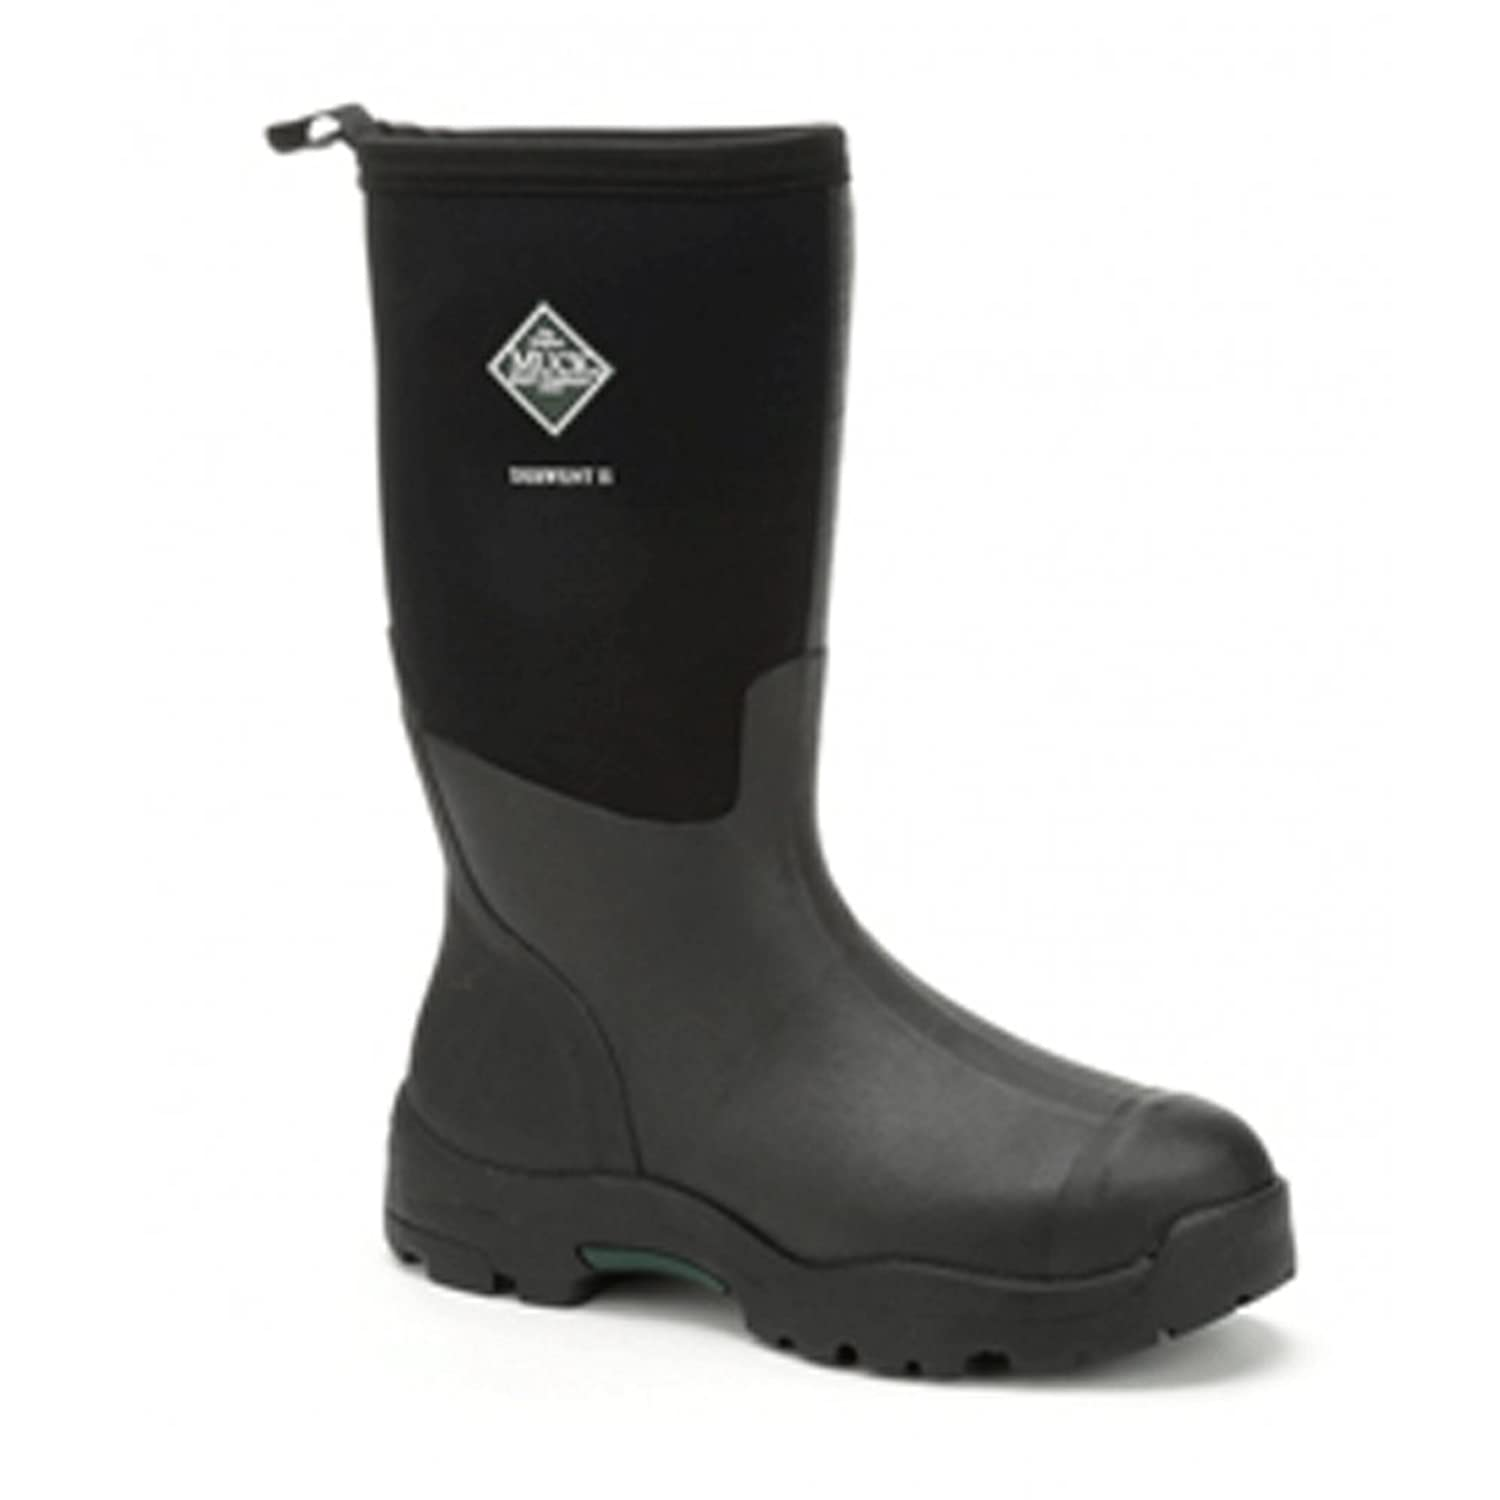 Muck Boots Hale Women&39s Rain Boots: Amazon.co.uk: Shoes &amp Bags